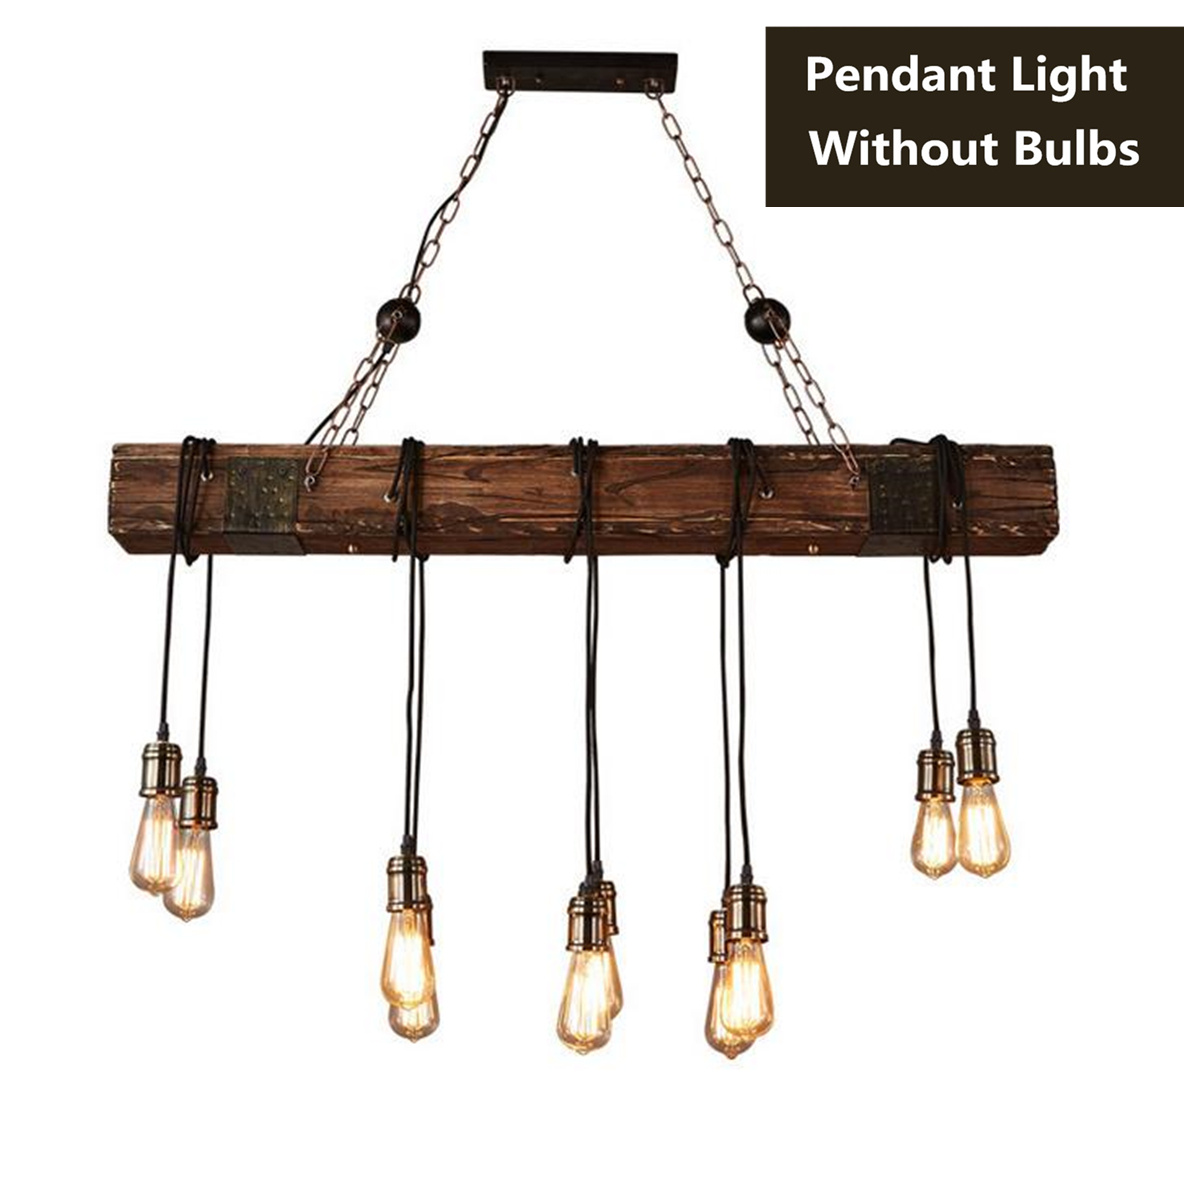 Wood Antique Farmhouse Beam Island Hanging Pendant Lights with 10 Edison Bulb Home Kitchen Restaurant Decorations